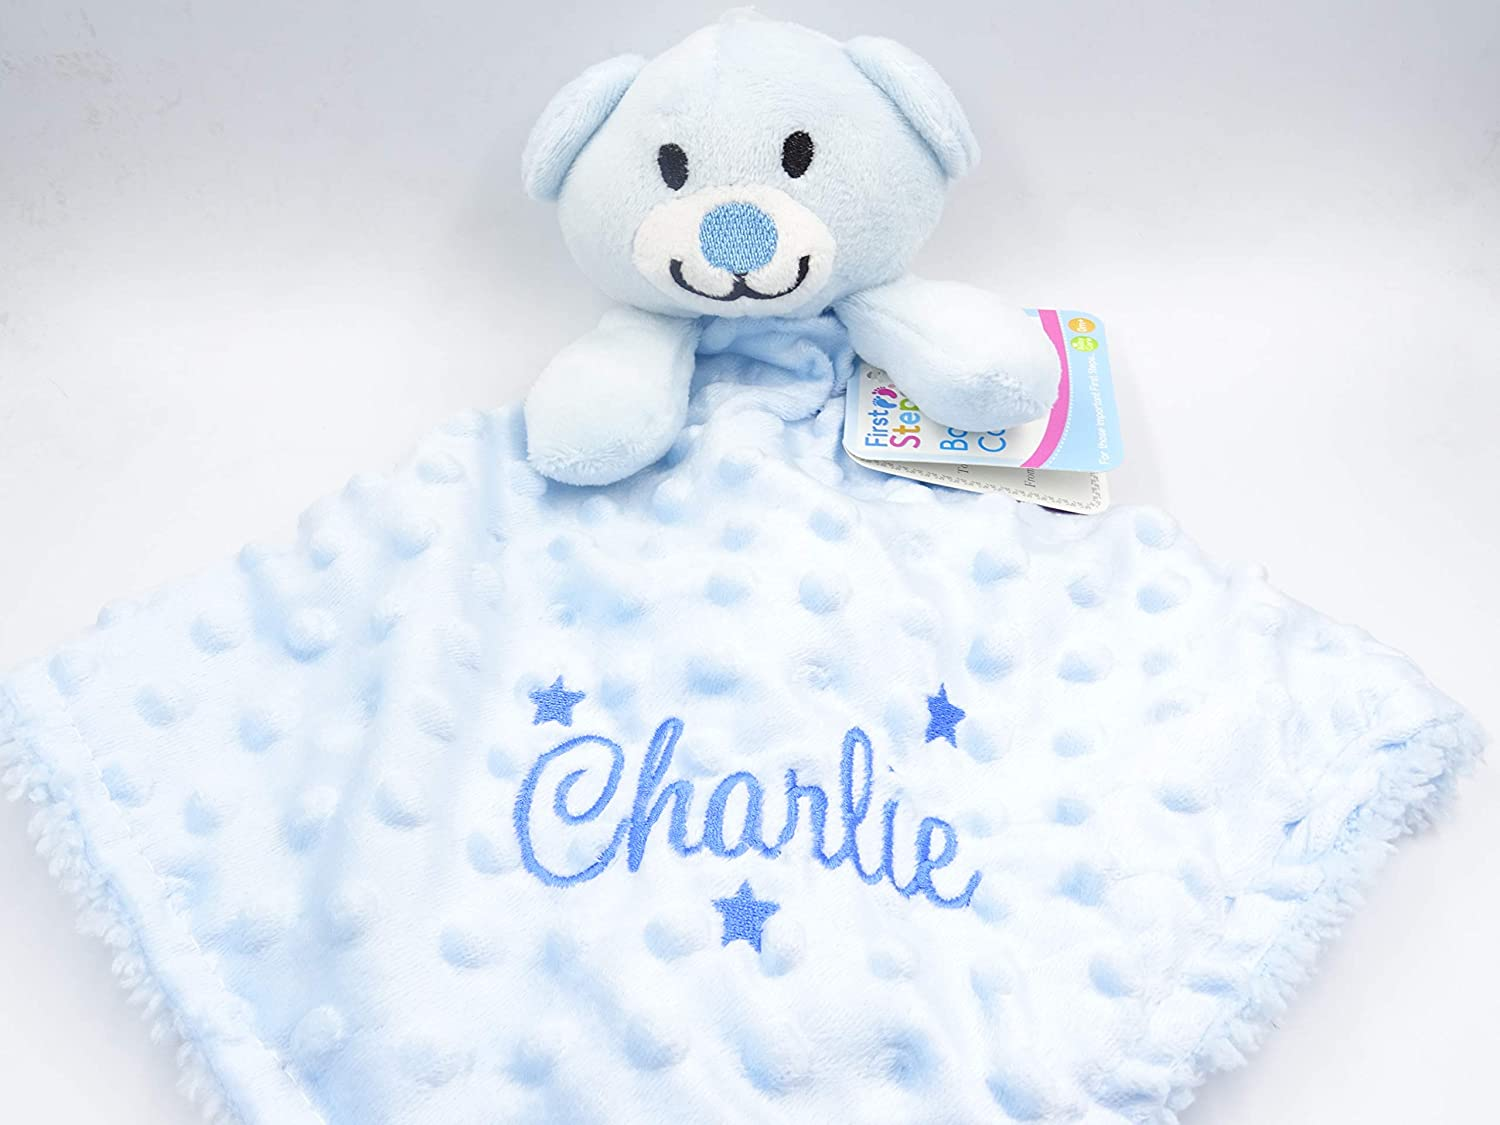 Baby Comforting taggies Blanket 26.5cmx26.5cm Soft Square Plush Baby Appease Towel Security blanket for 0-3 Years Old Babies